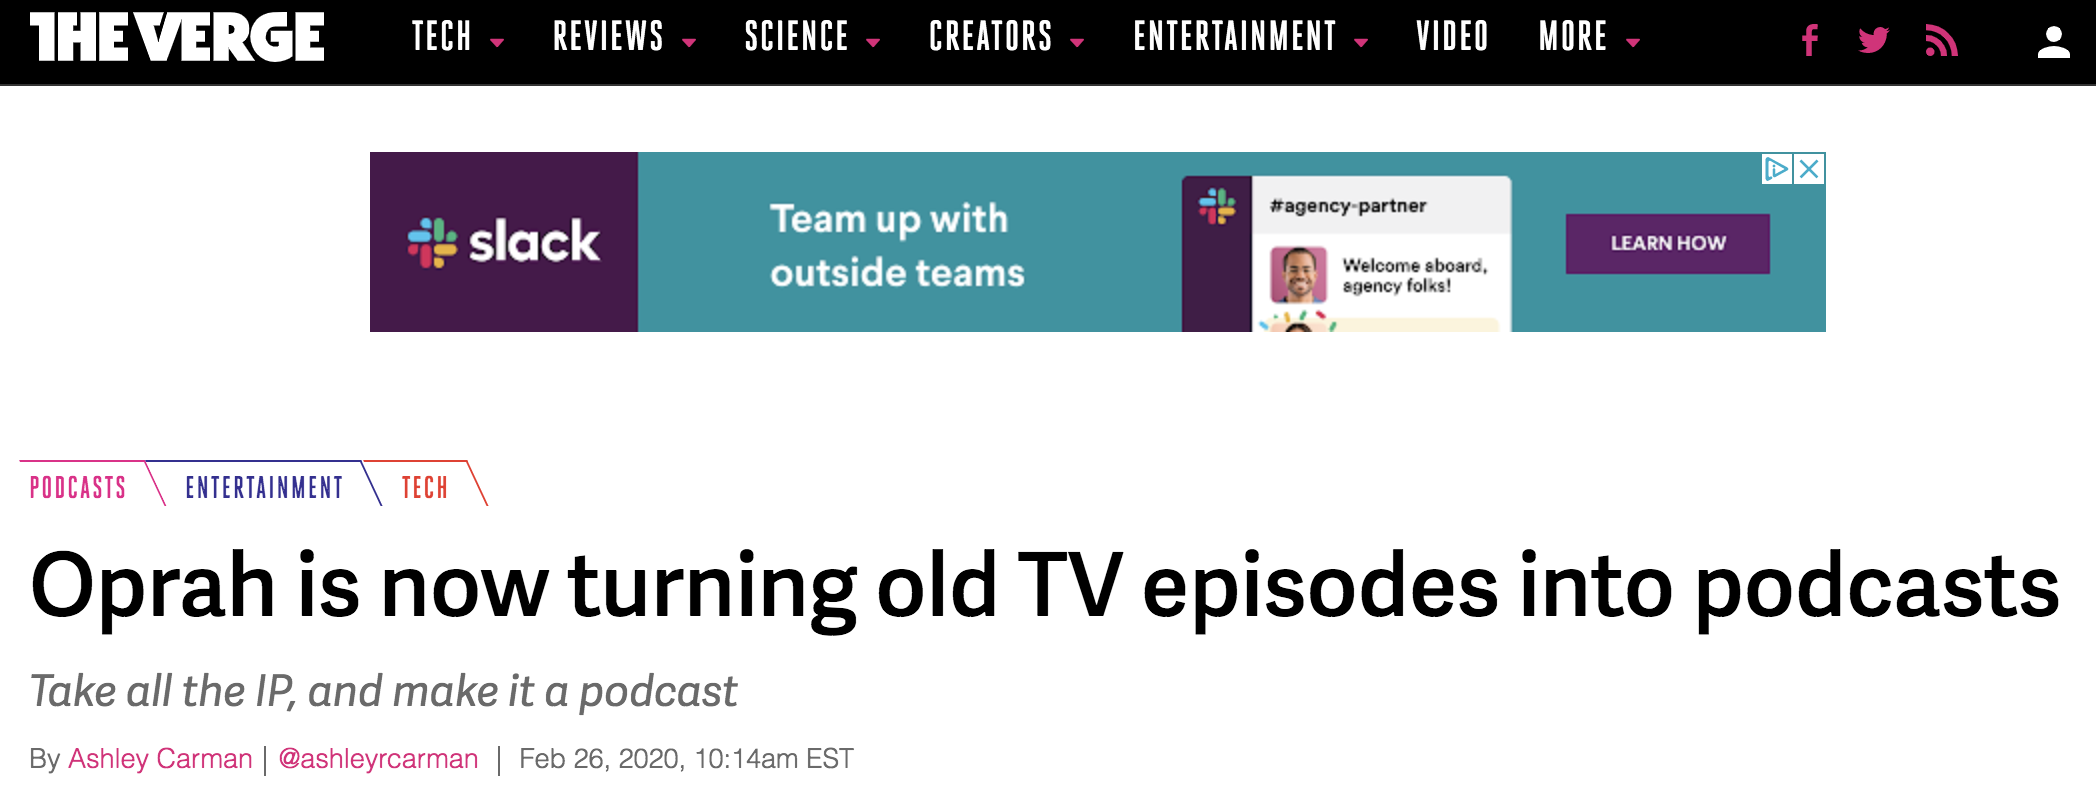 Oprah is now turning old TV episodes into podcasts headline from The Verge